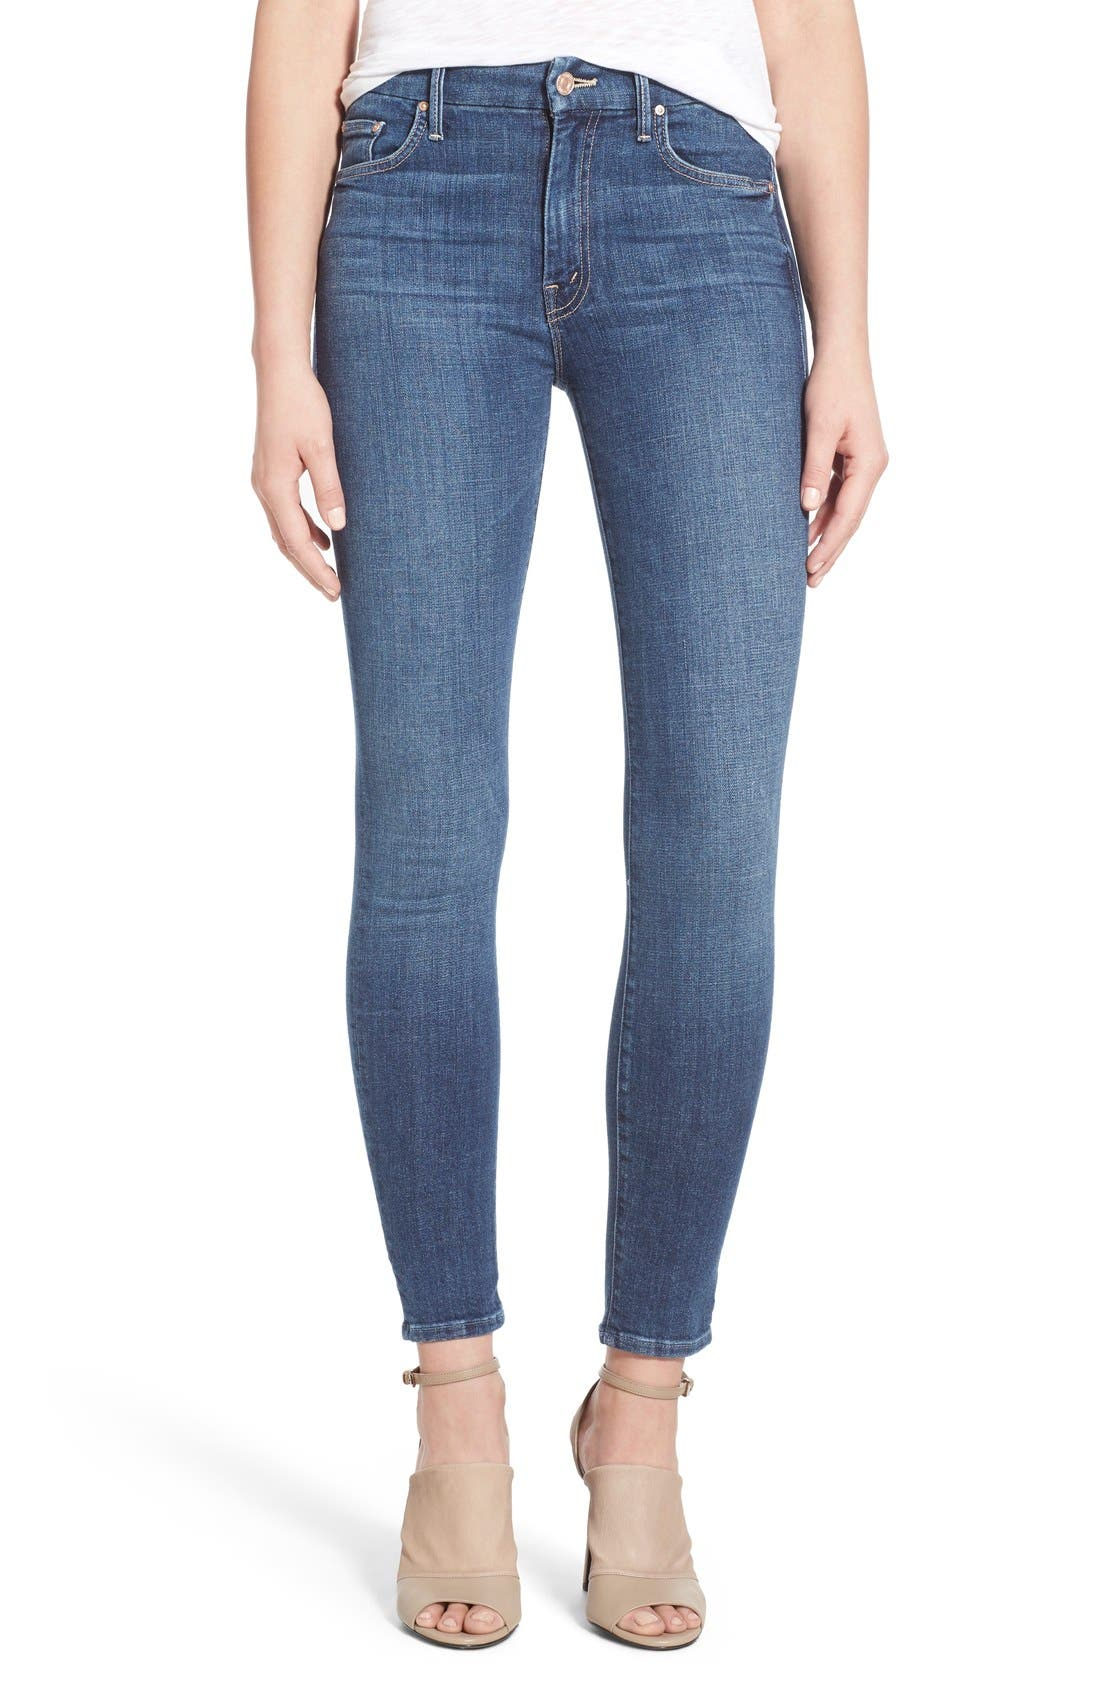 Alternate Image 1 Selected - MOTHER 'The Looker' High Rise Skinny Jeans (Girl Crush)